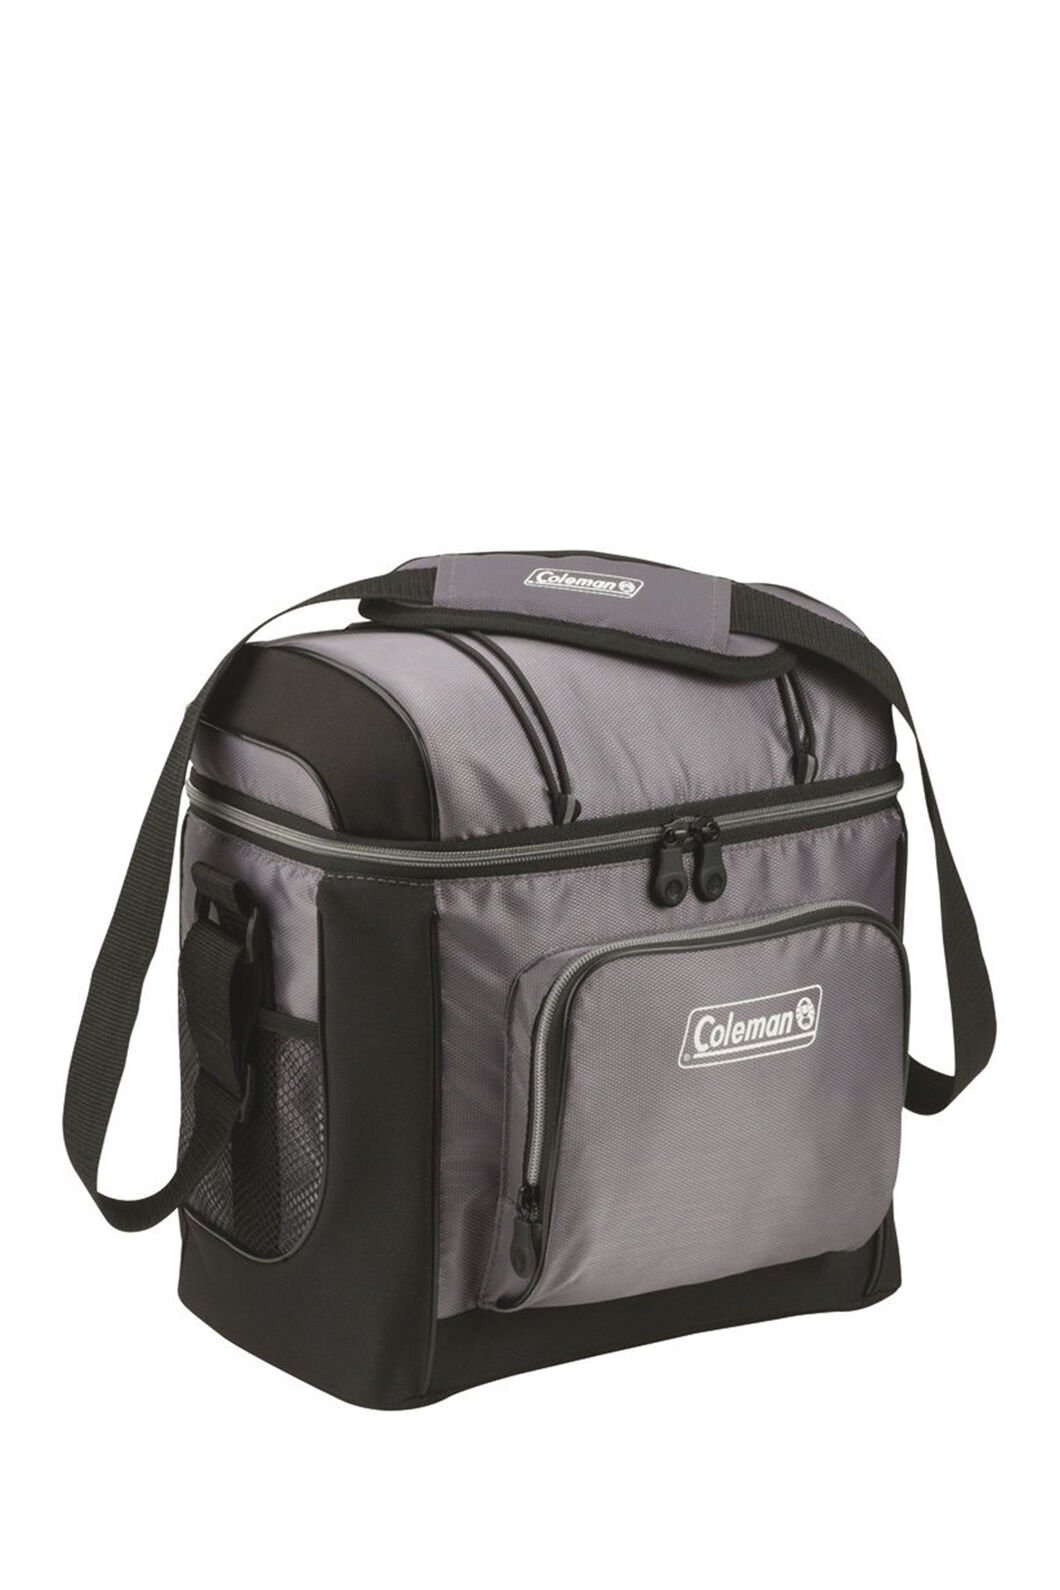 Coleman 16 Can Soft Cooler, None, hi-res